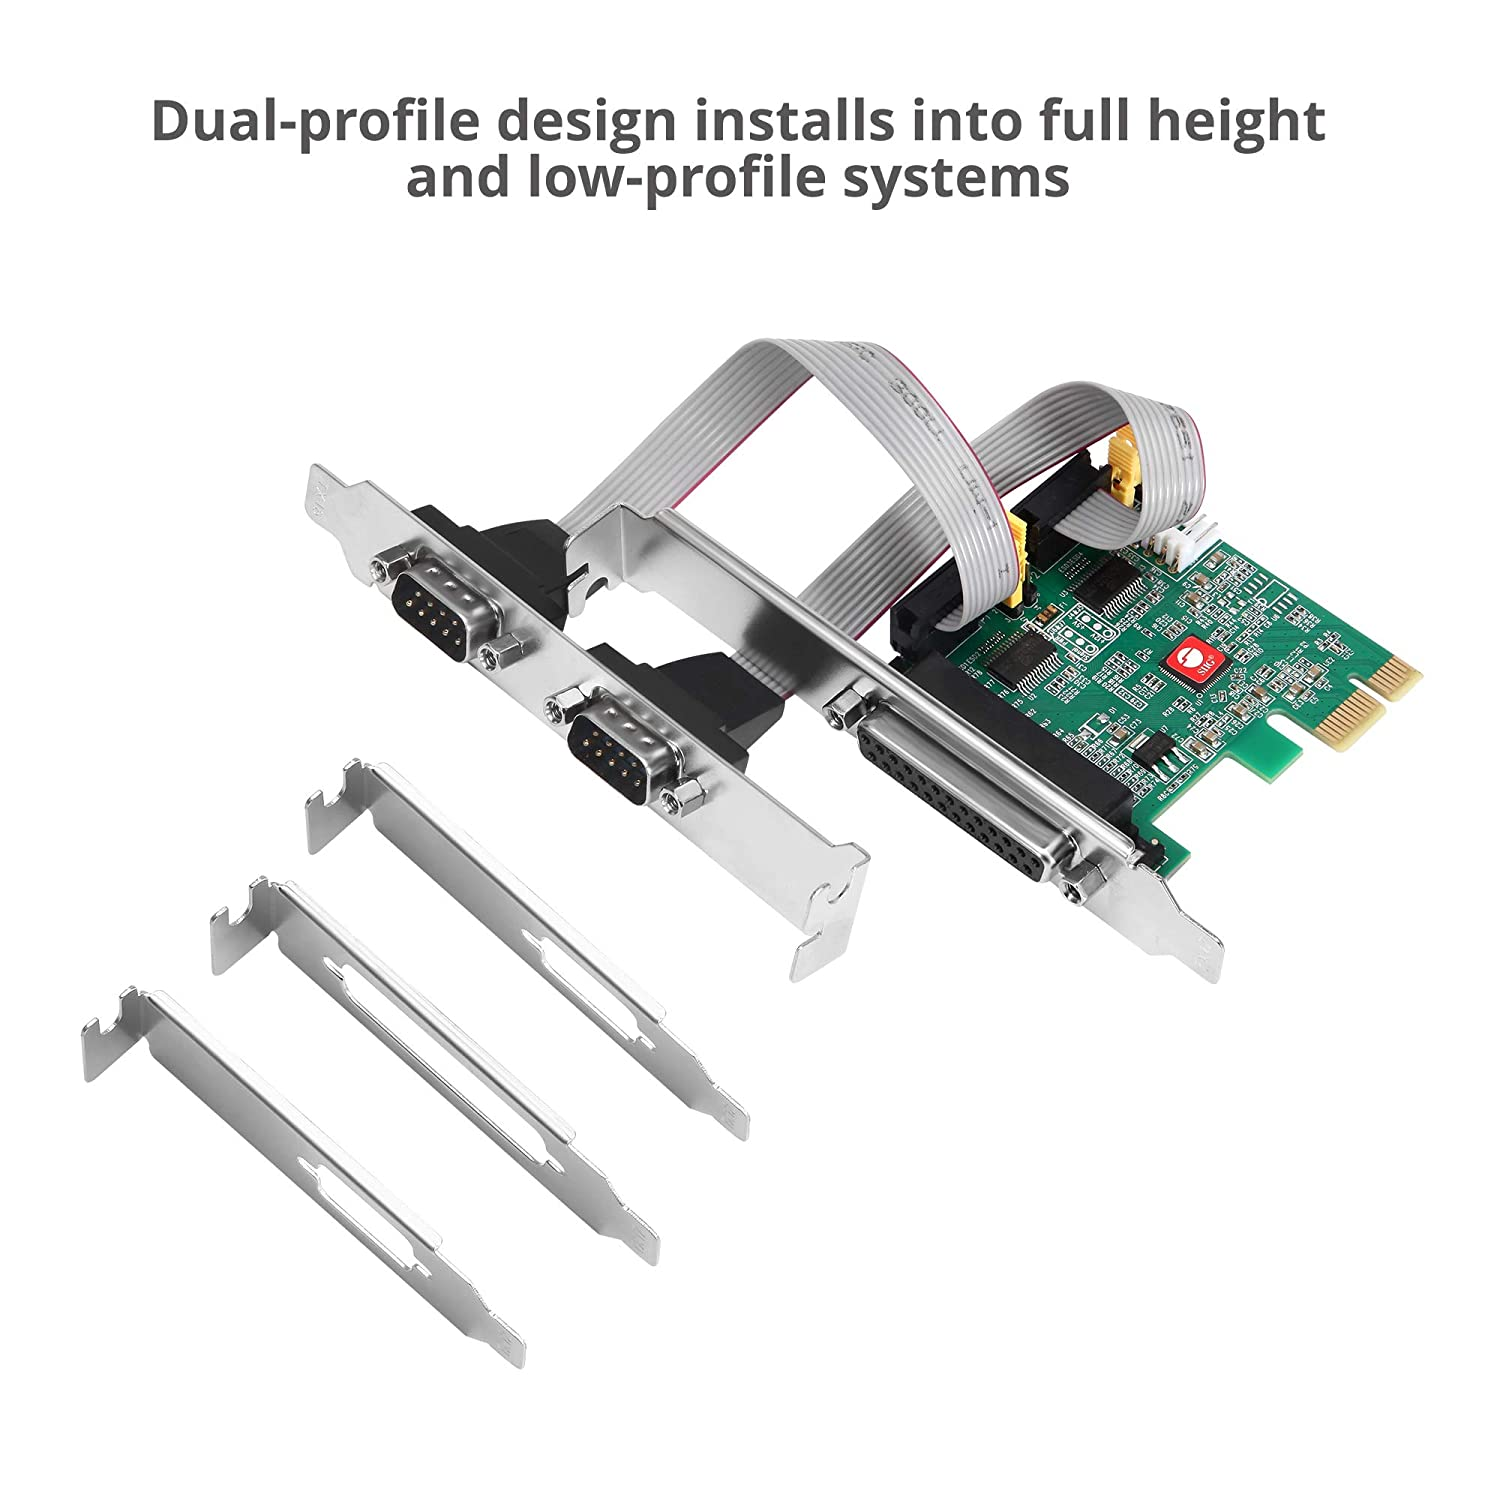 2 JJ-E20411-S1 SIIG Dual Parallel Port PCIe Card Compatible with 16C550 UART Serial Port//RS-232 and Single 1